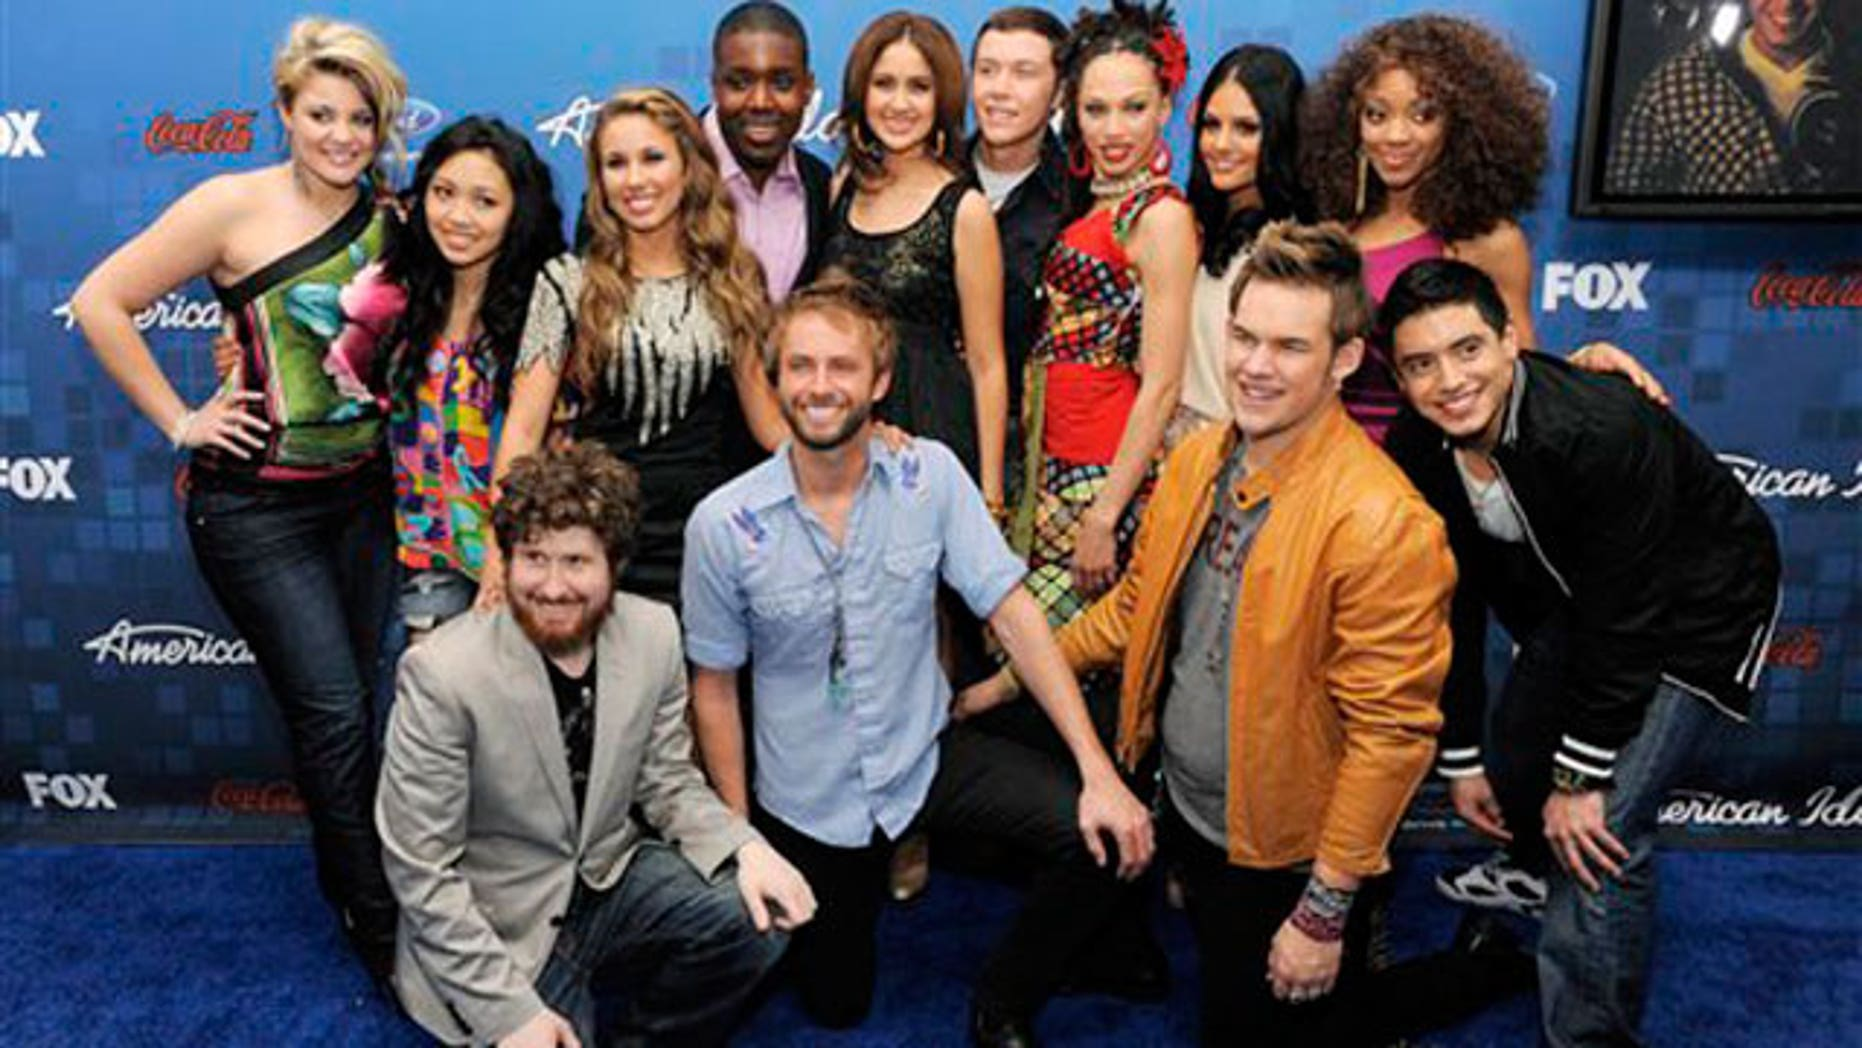 """March 3: """"American Idol"""" finalists pose together at the """"American Idol"""" Finalists Party in Los Angeles. (AP)"""